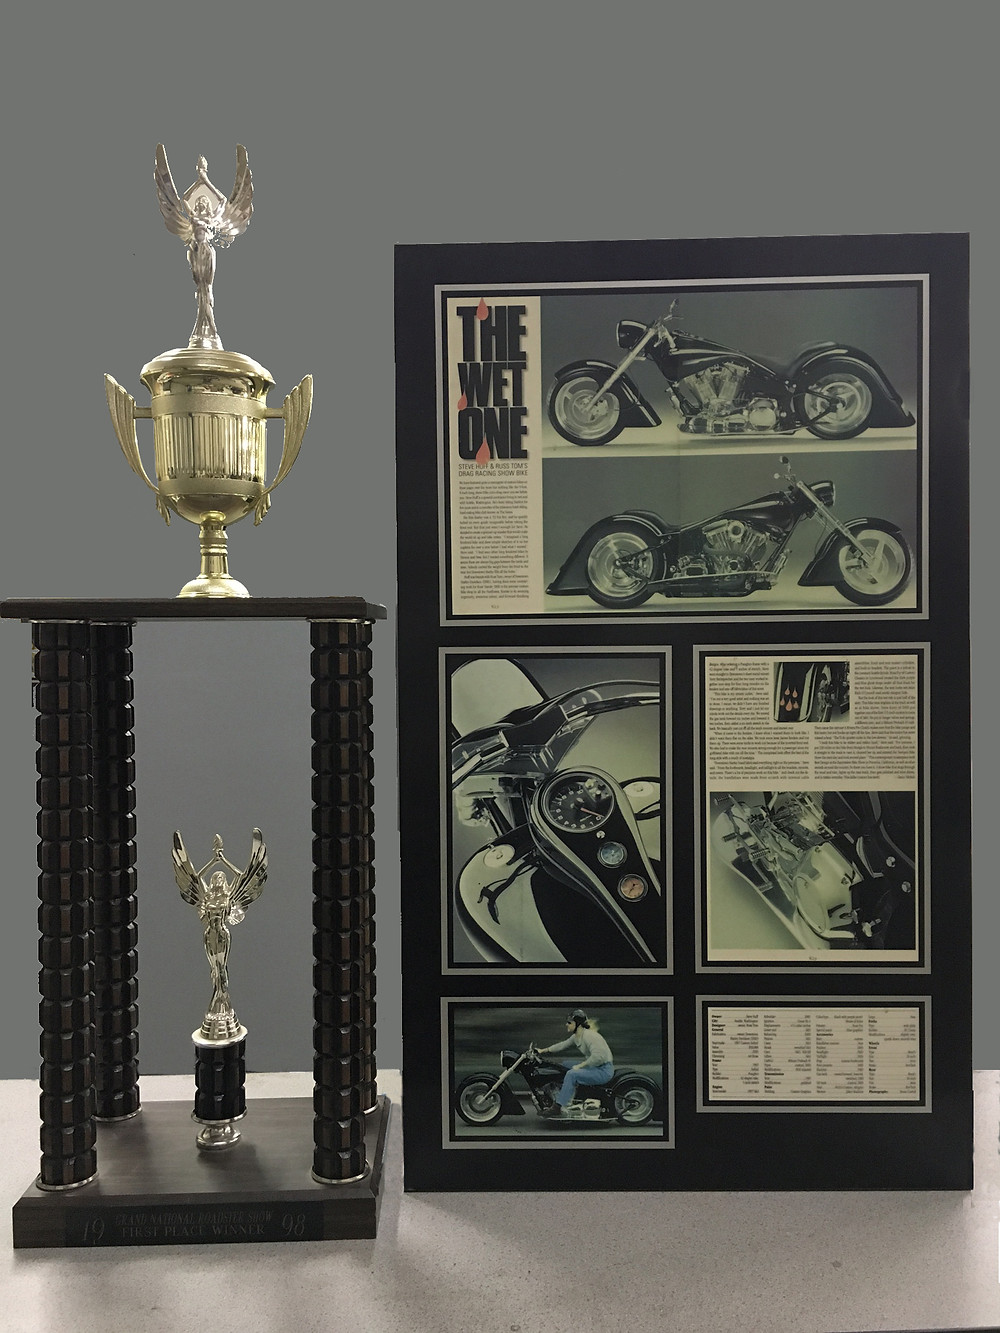 1998 Grand National Roadster Show winnter top custom street bike motorcycle trophy the wet one custom motorcycle